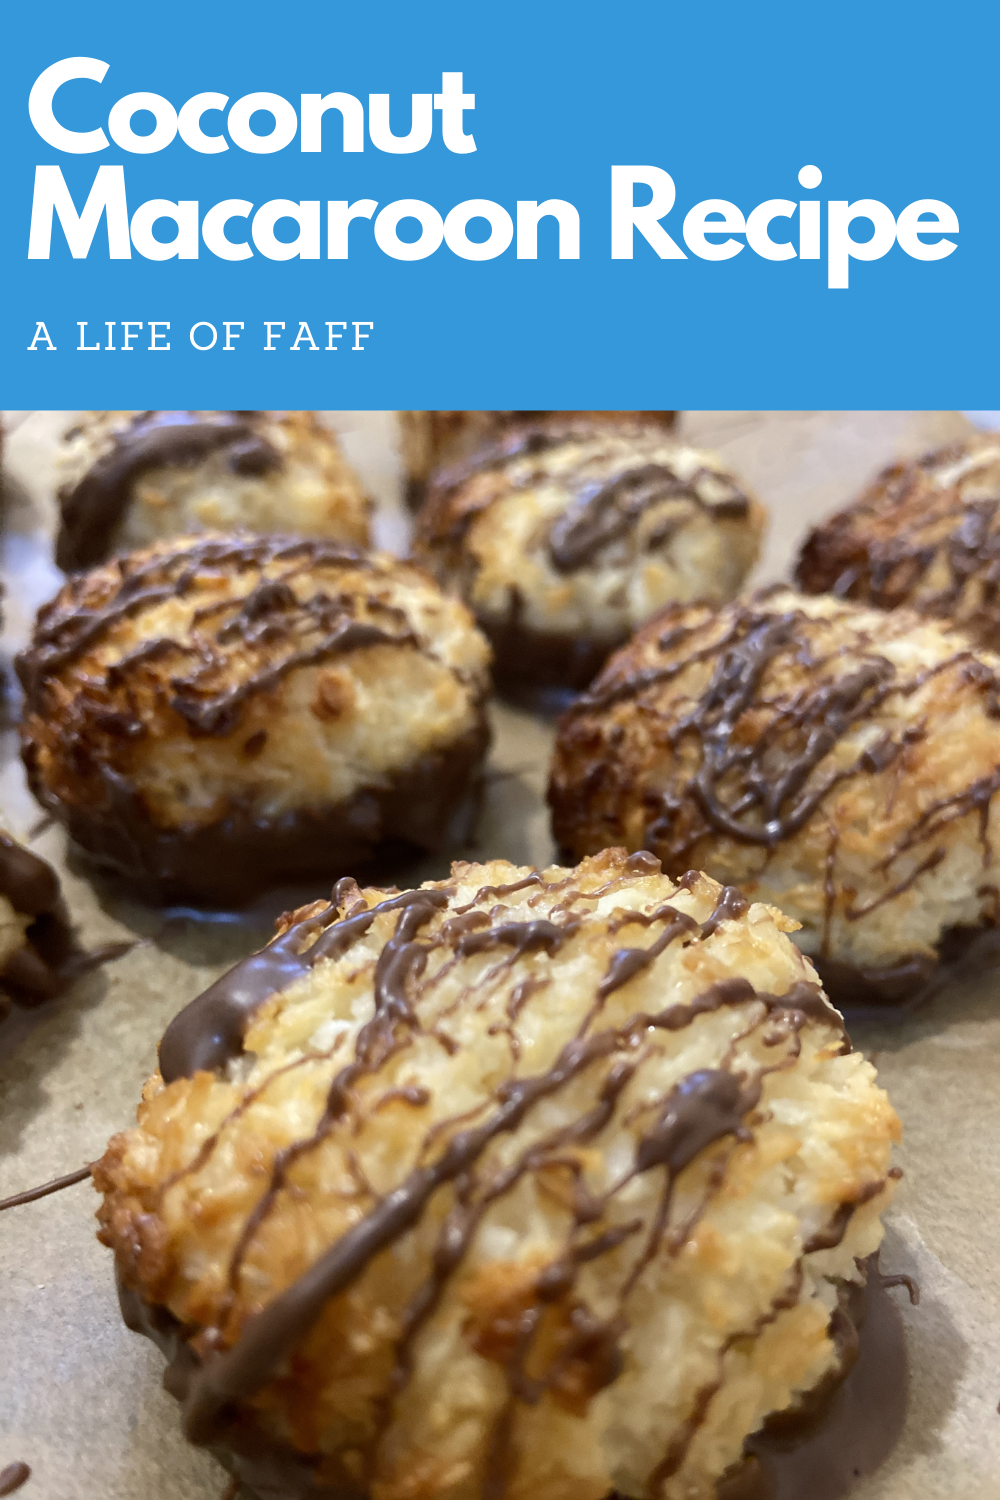 Coconut macaroon recipe Pin 2 for Pinterest